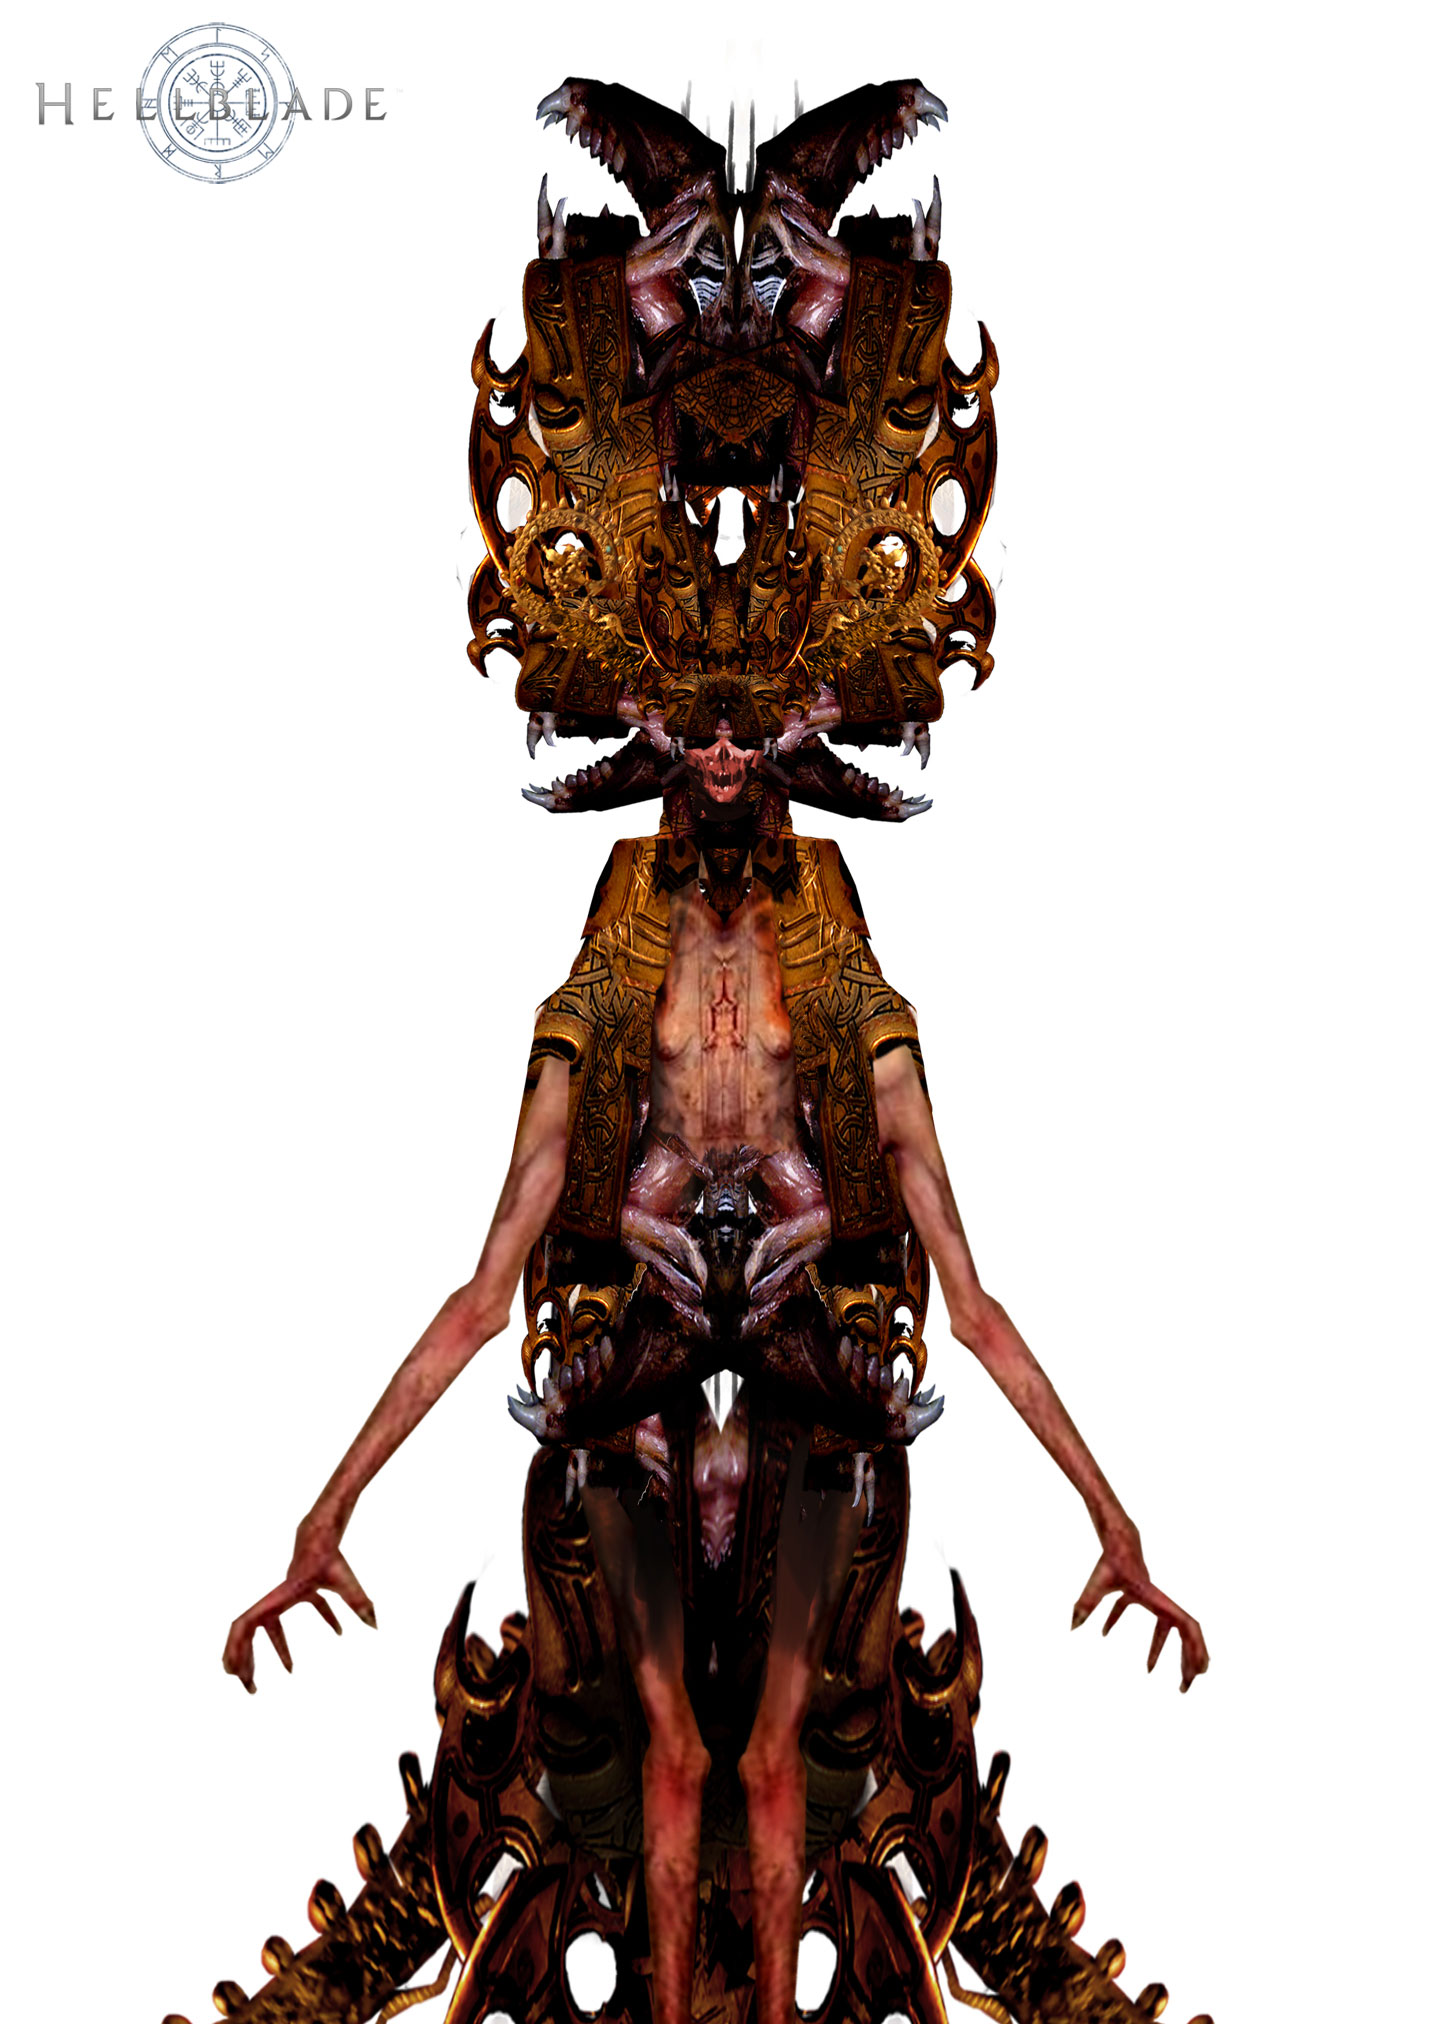 Hellblade PS4 Elmets Ornaments Boss Concept Artwork